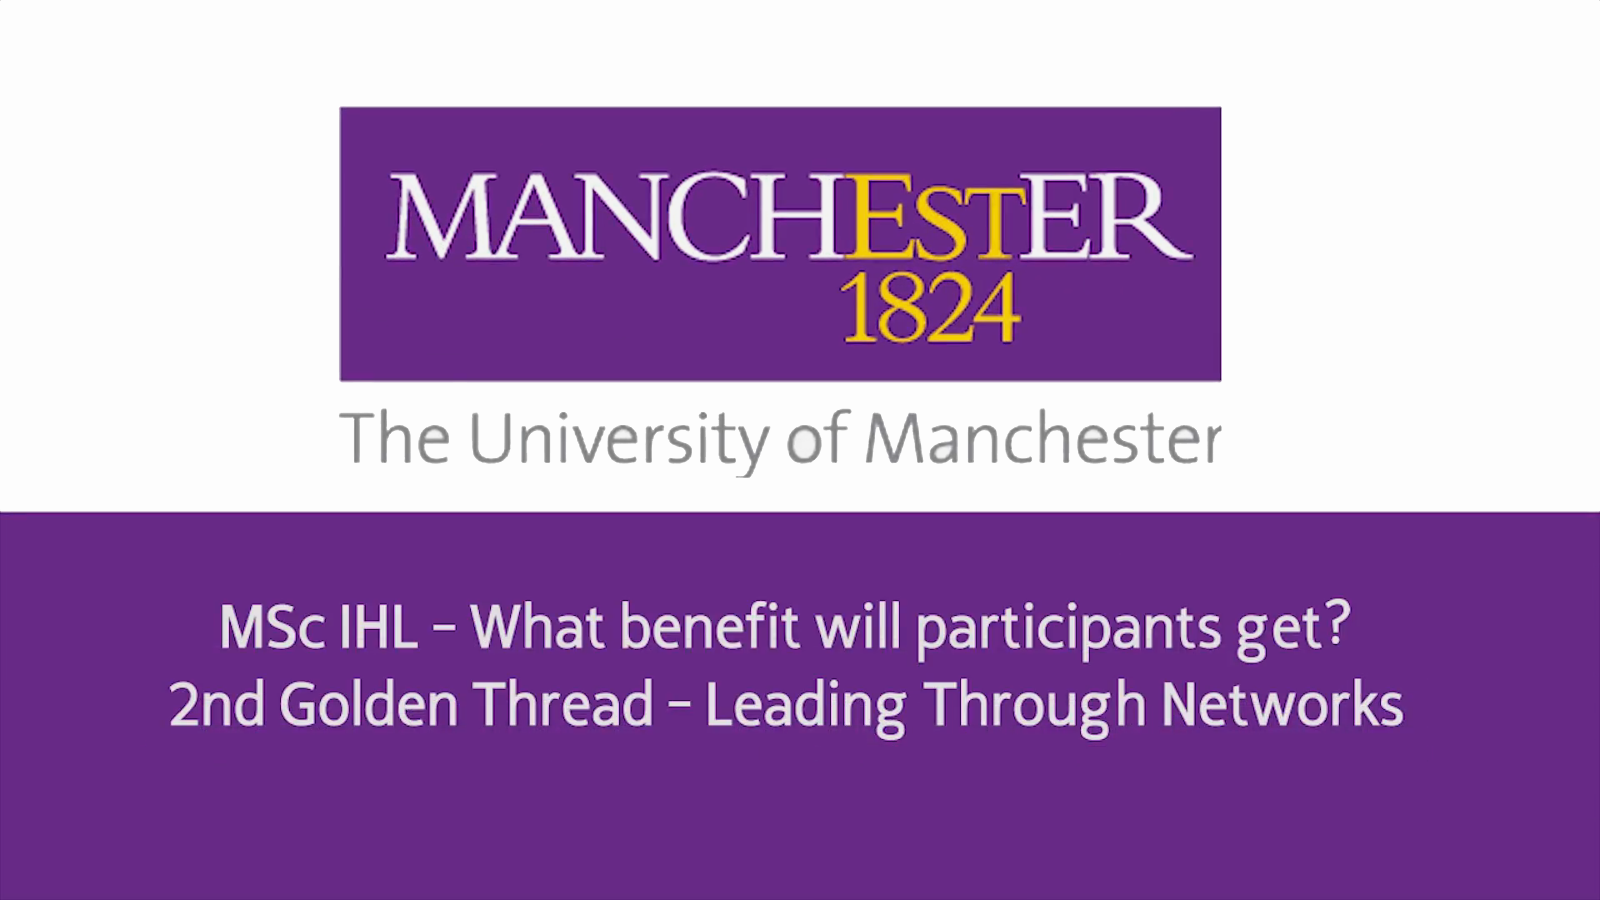 MSc IHL - What Benefits will Participants Get - 2nd Golden Thread - Leading Through Networks